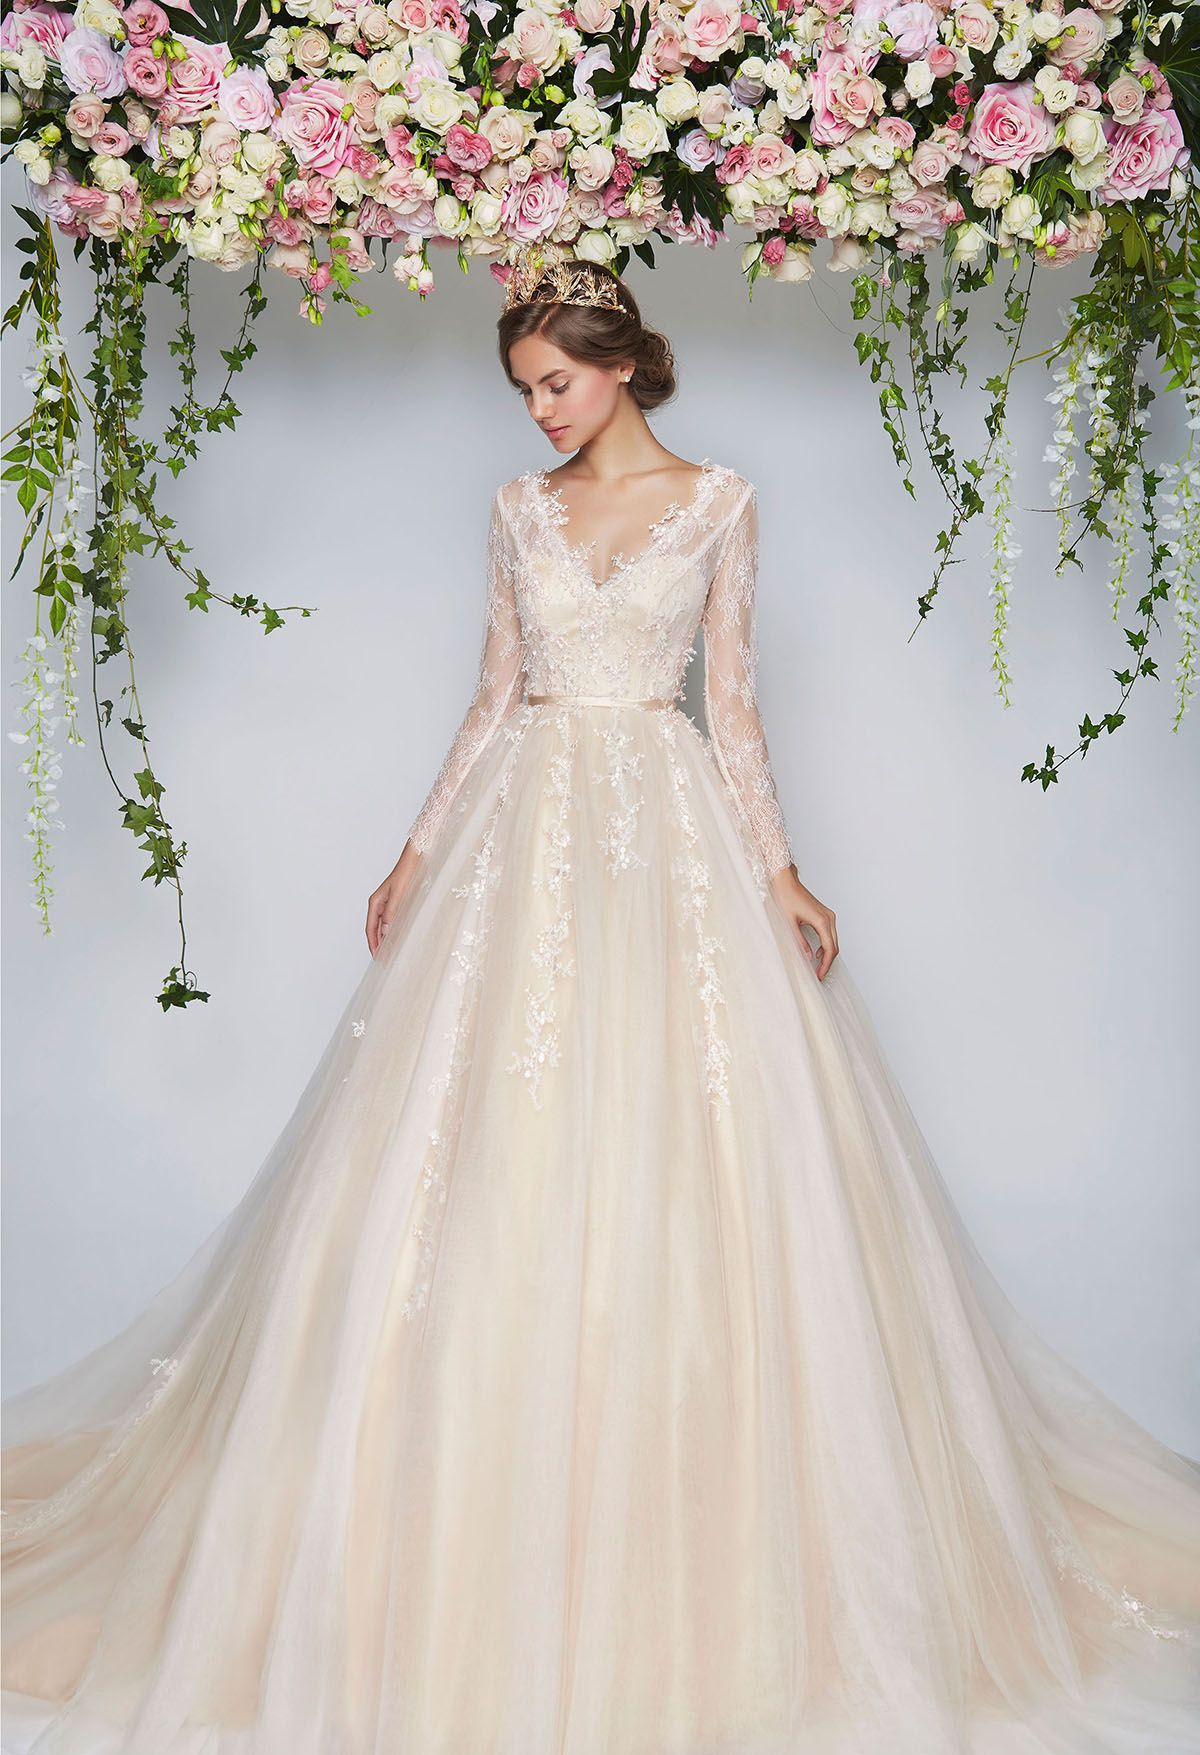 Cream vneck wedding ball gown with lace sleeves // The